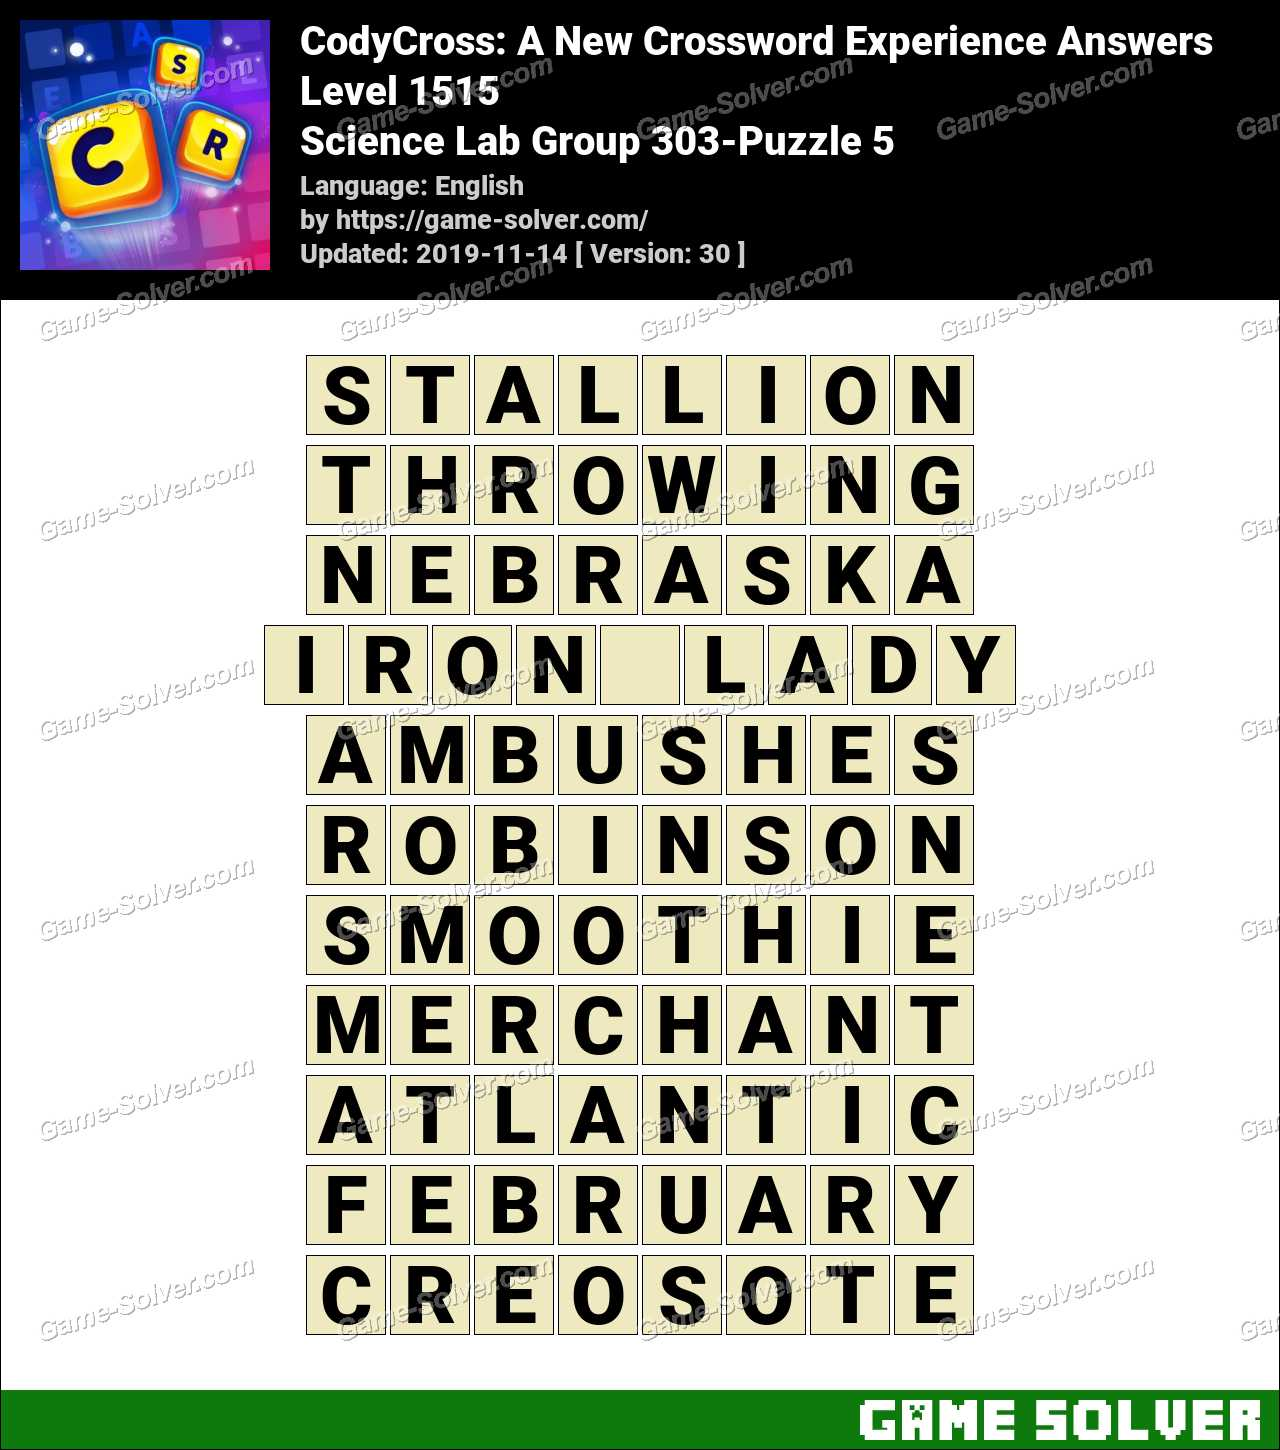 CodyCross Science Lab Group 303-Puzzle 5 Answers